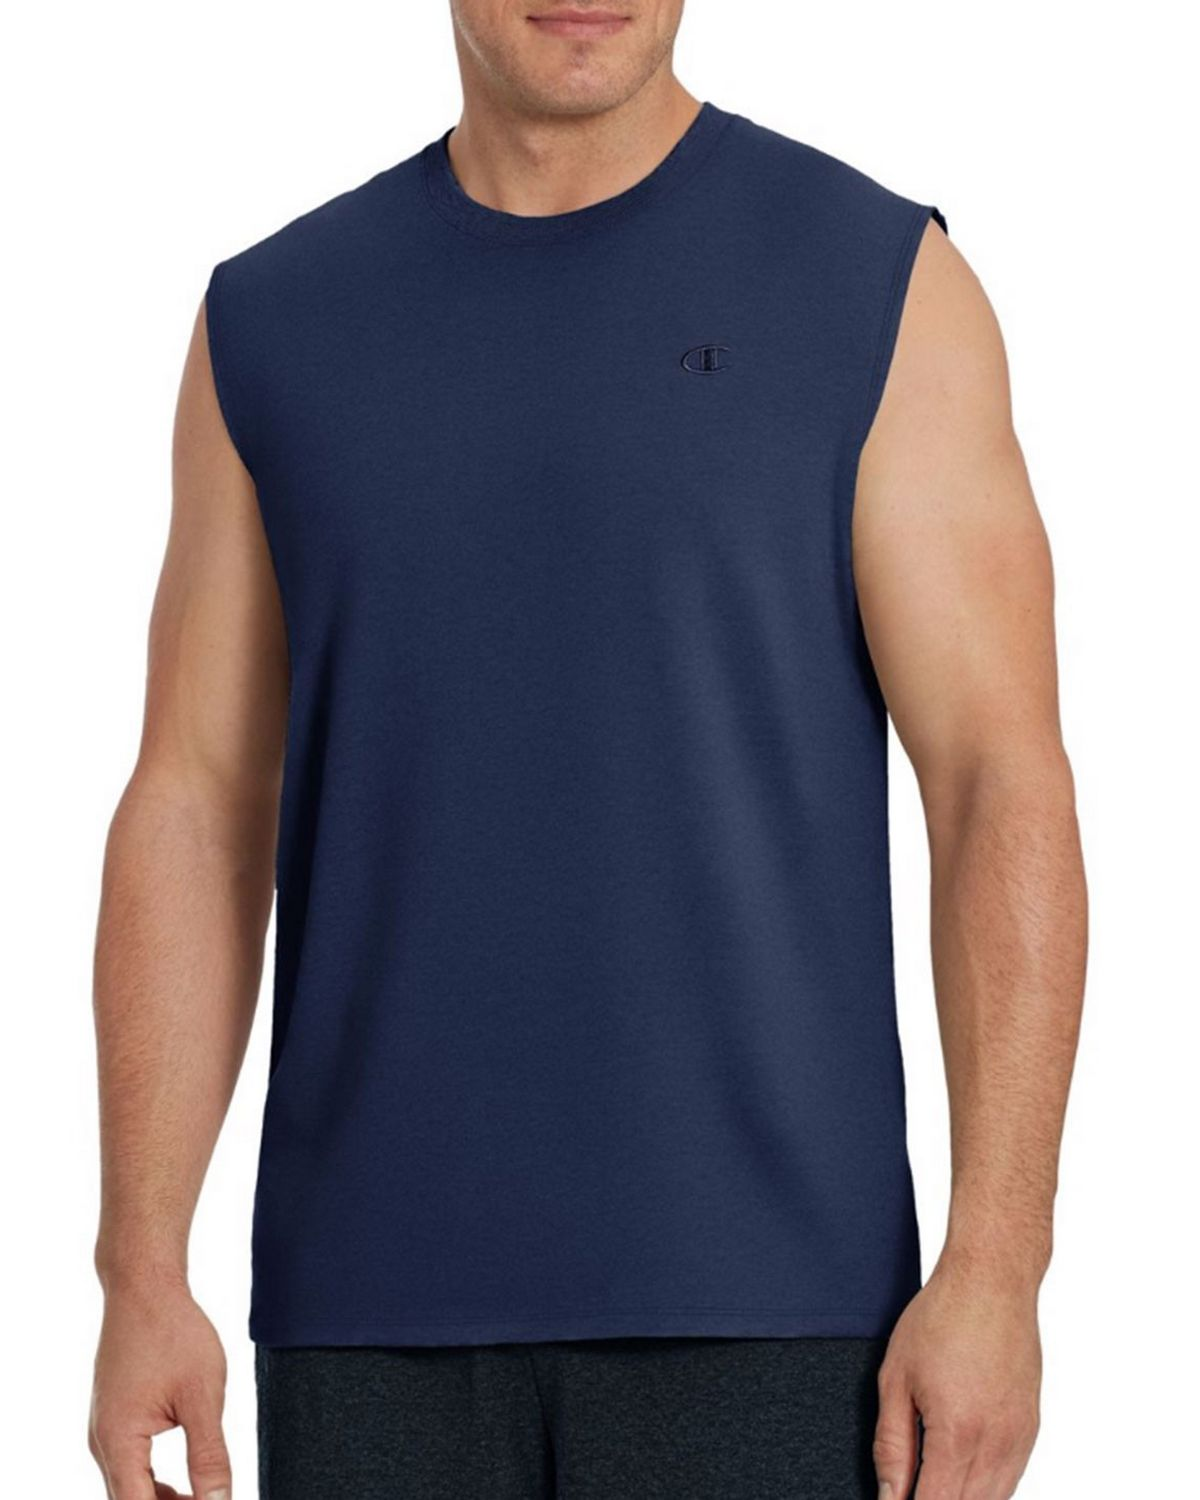 Champion T0222 Mens Muscle Tee - Surf The Web - M T0222